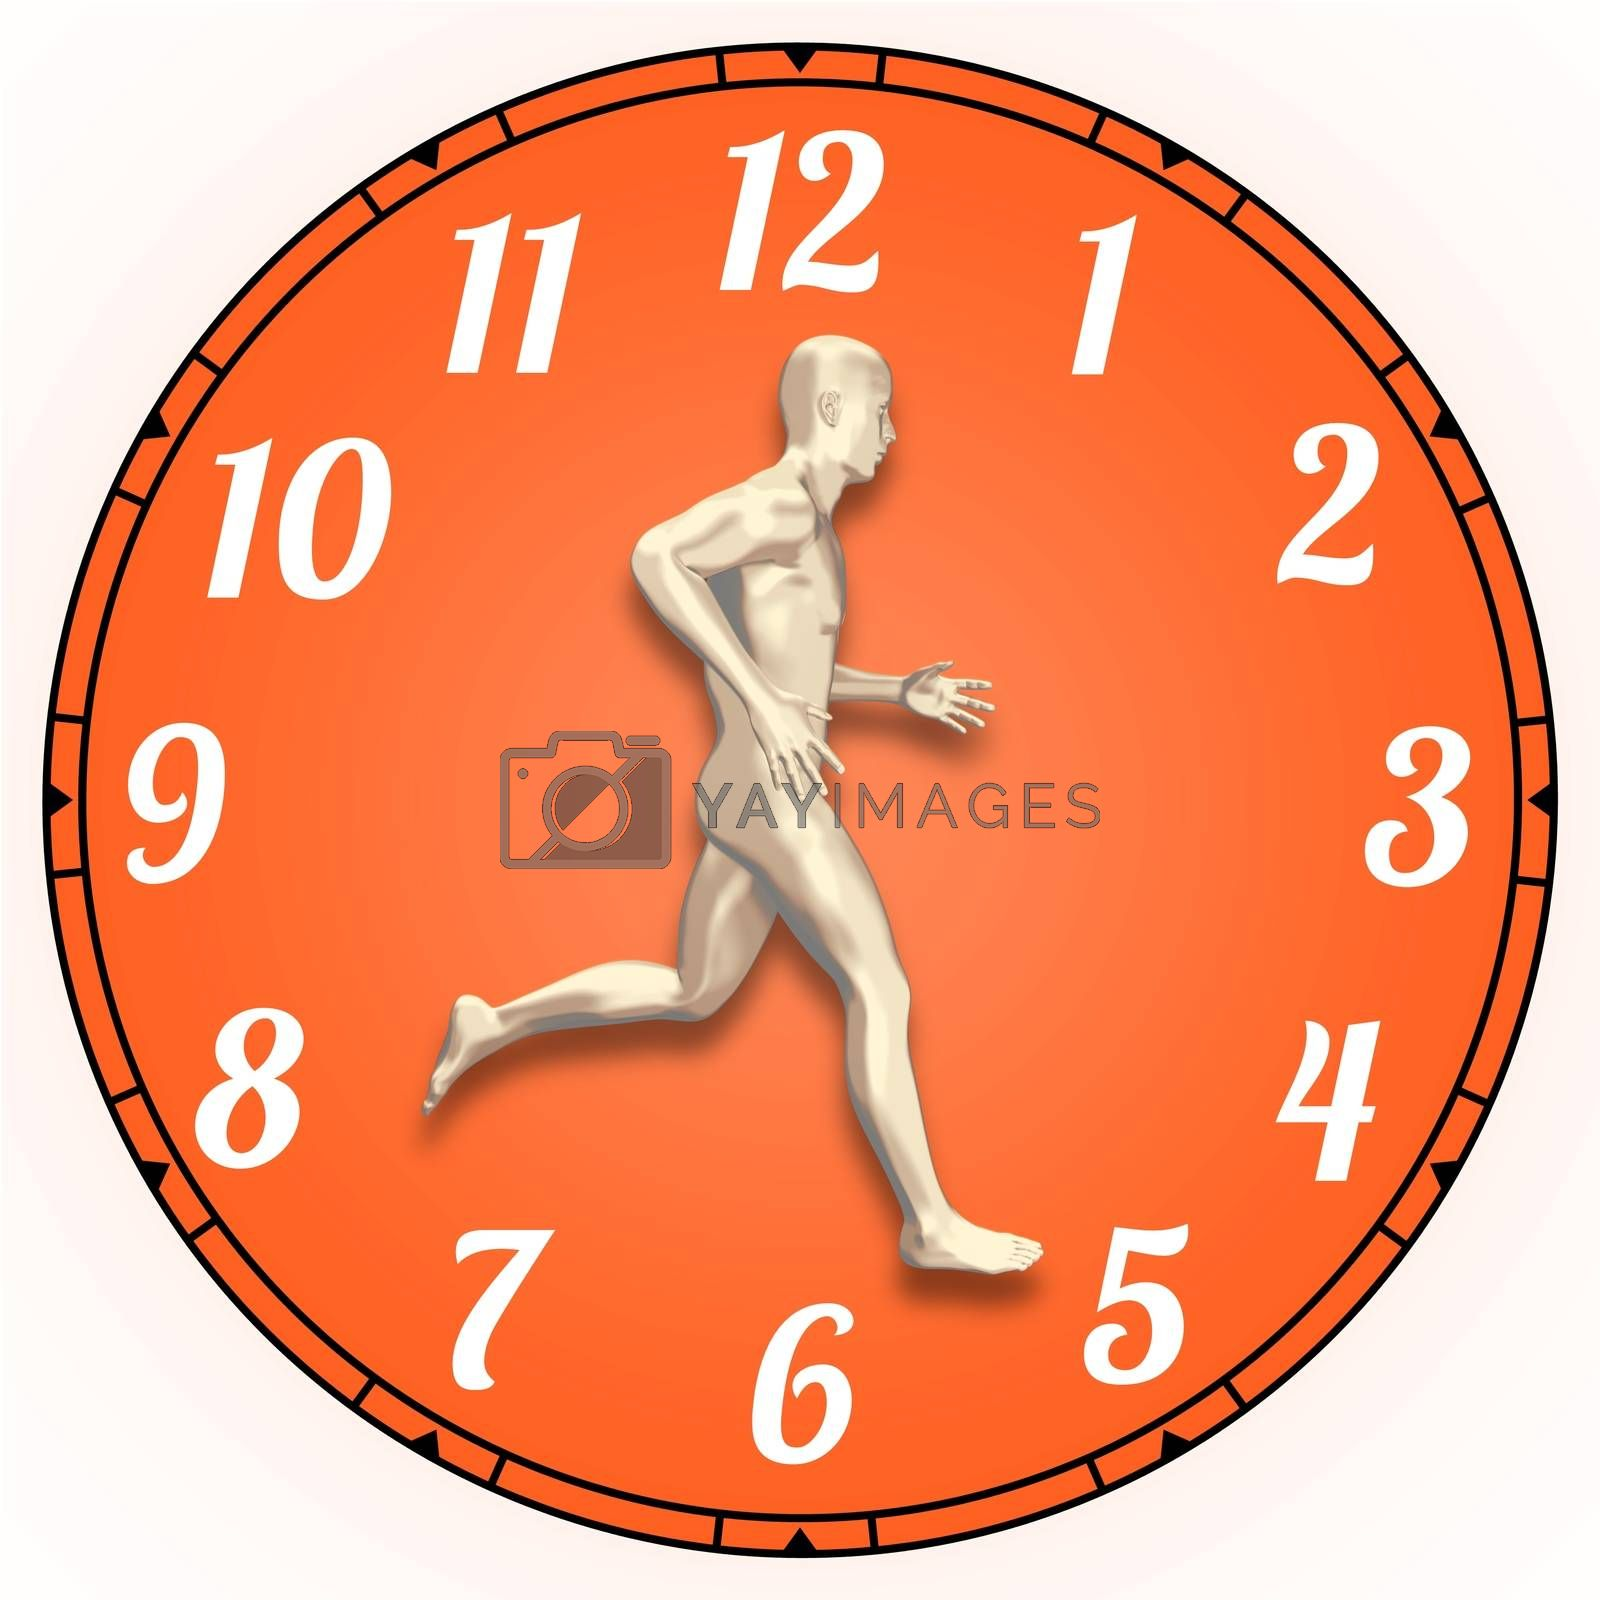 Illustration of a person running on a clock face